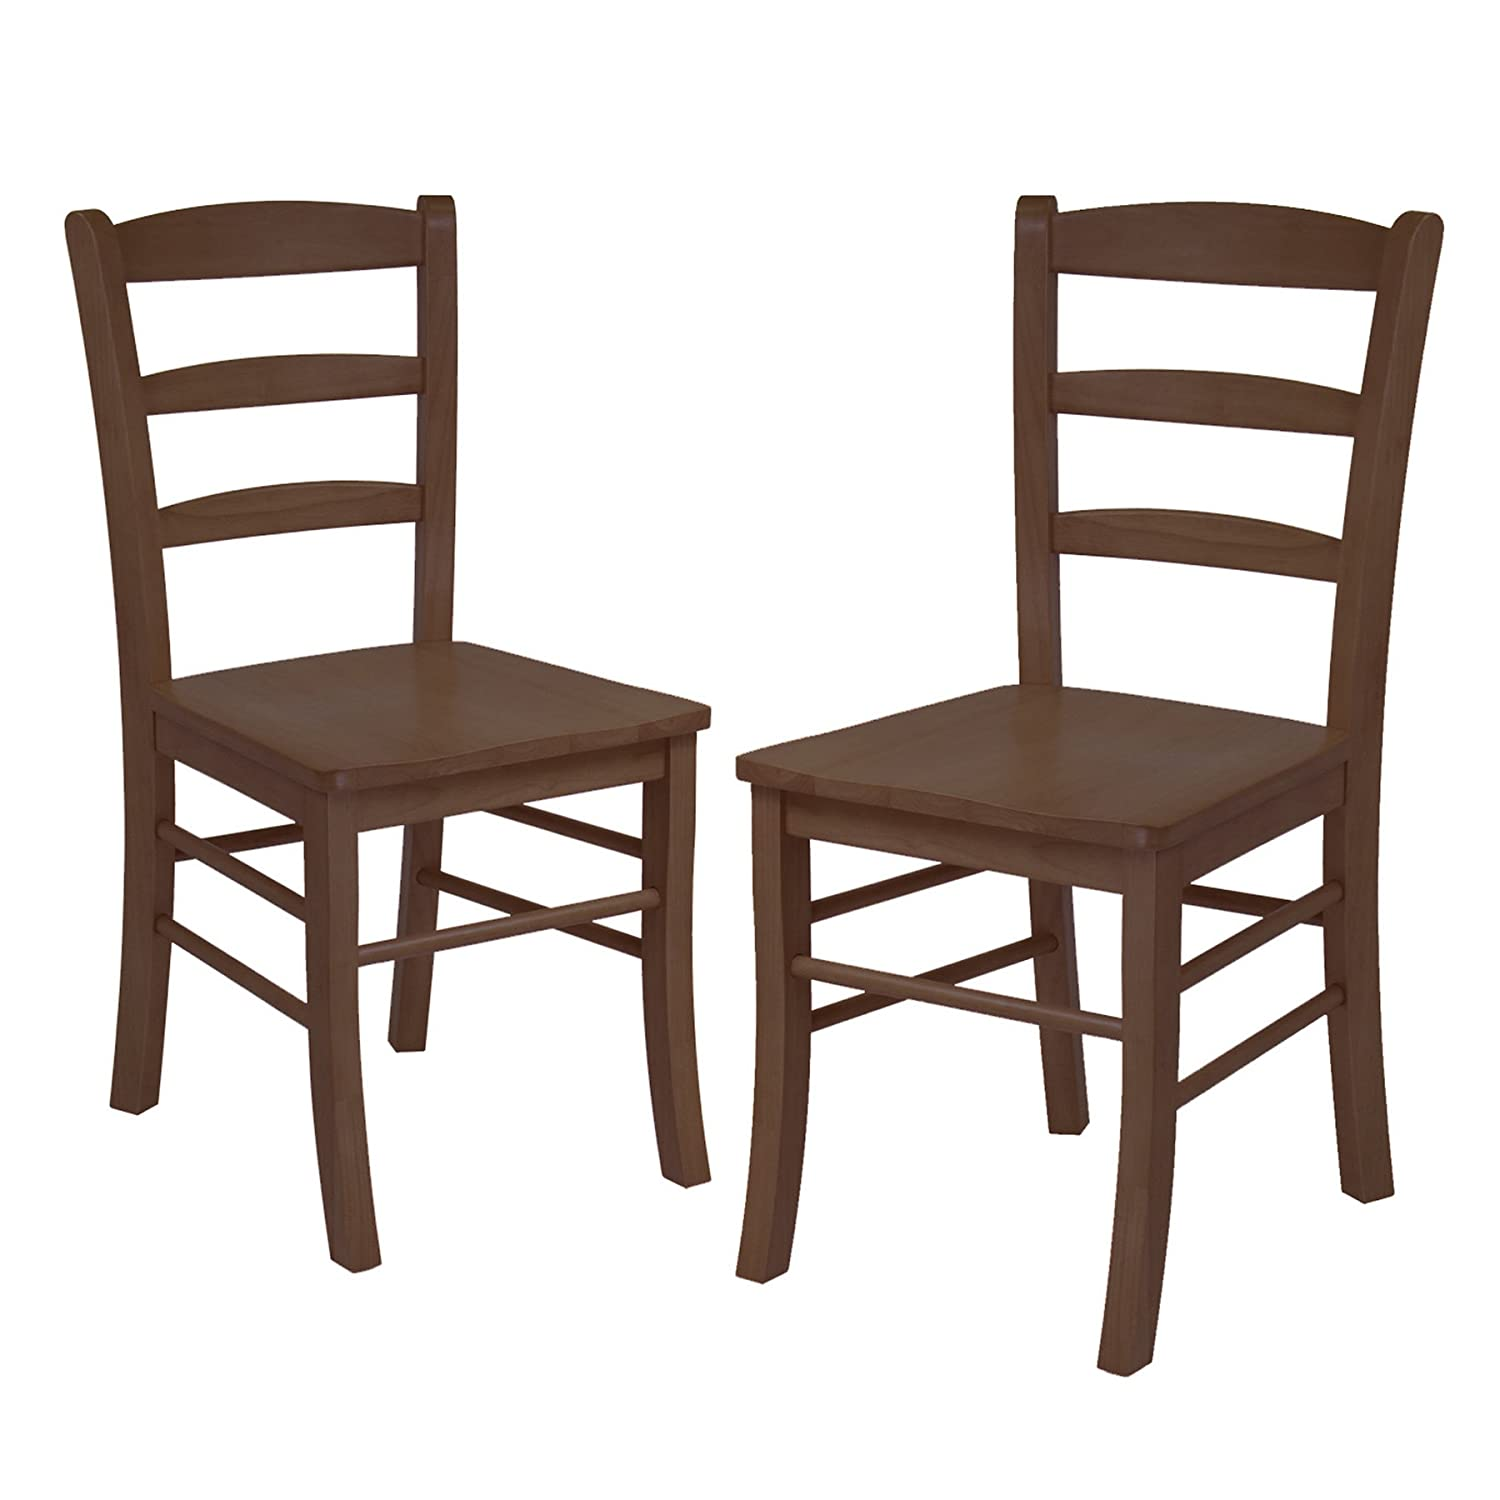 Amazon.com: Winsome Wood 34232 Benjamin Seating, Natural: Kitchen U0026 Dining